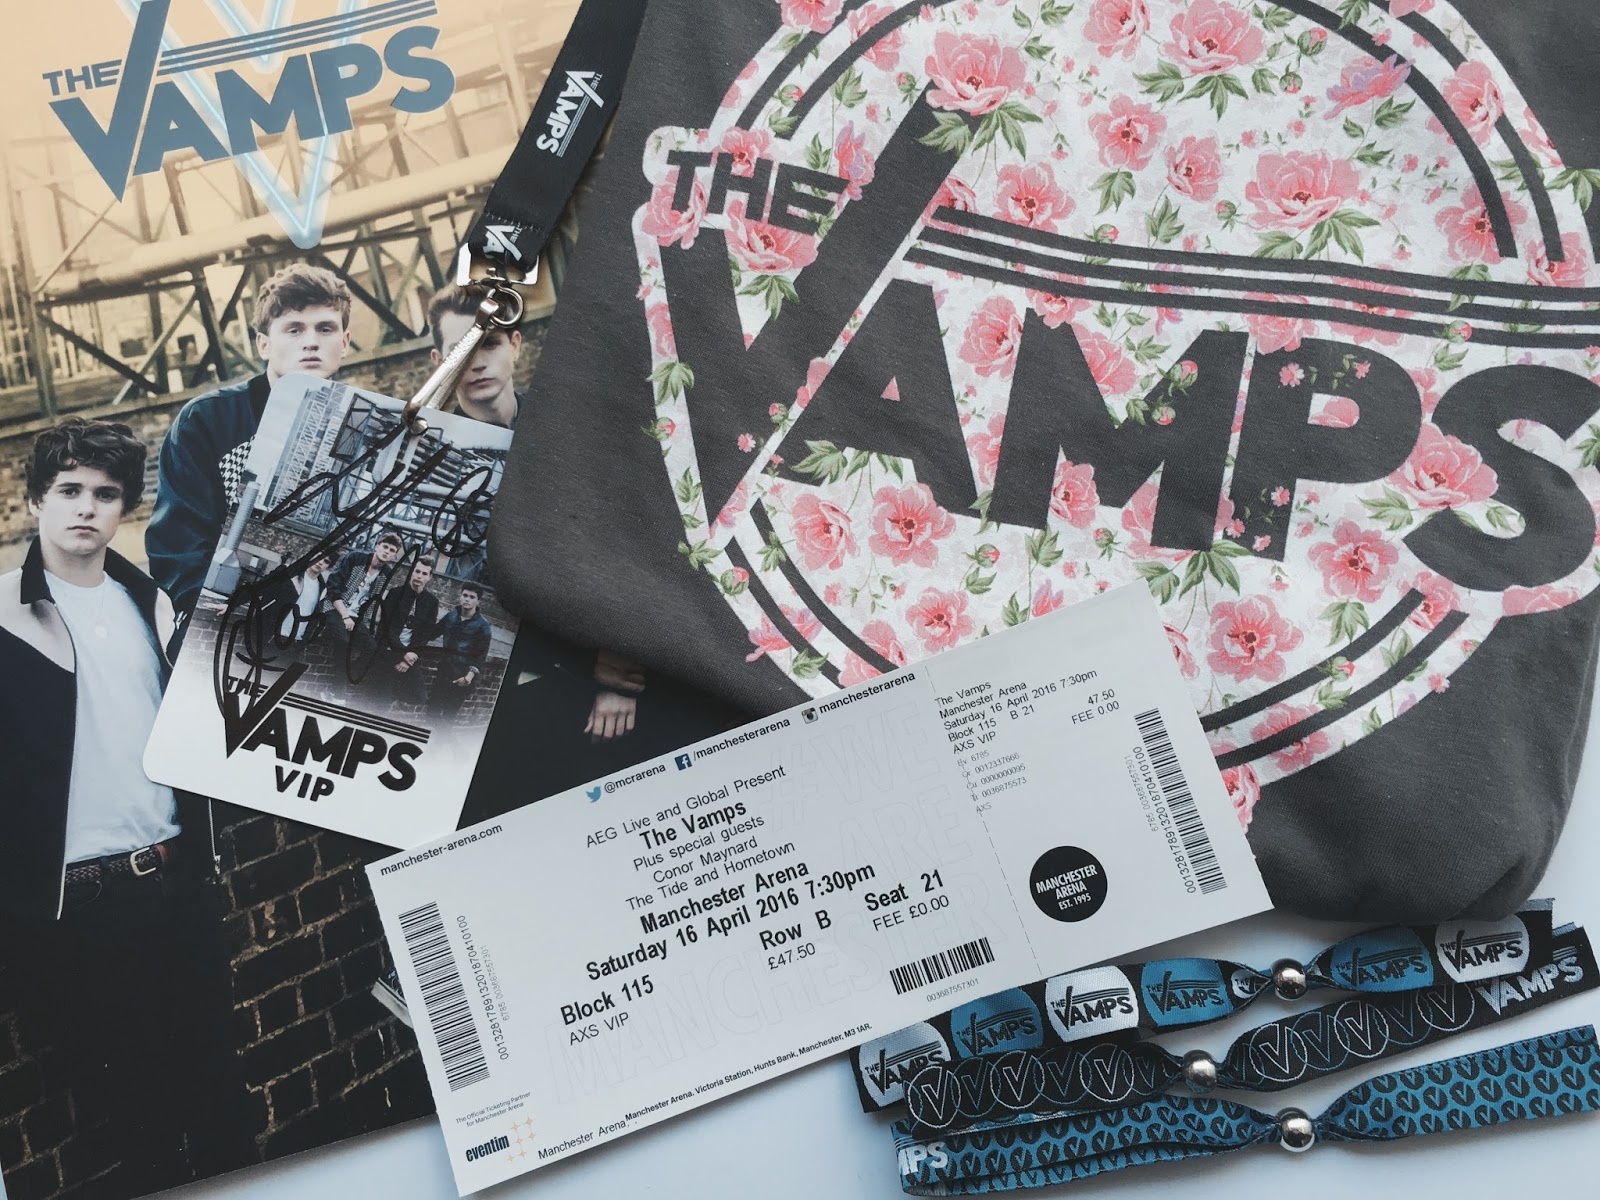 The vamps meet and greet tickets image collections greetings card the vamps wake up tour meet and greet concert everything erin m4hsunfo